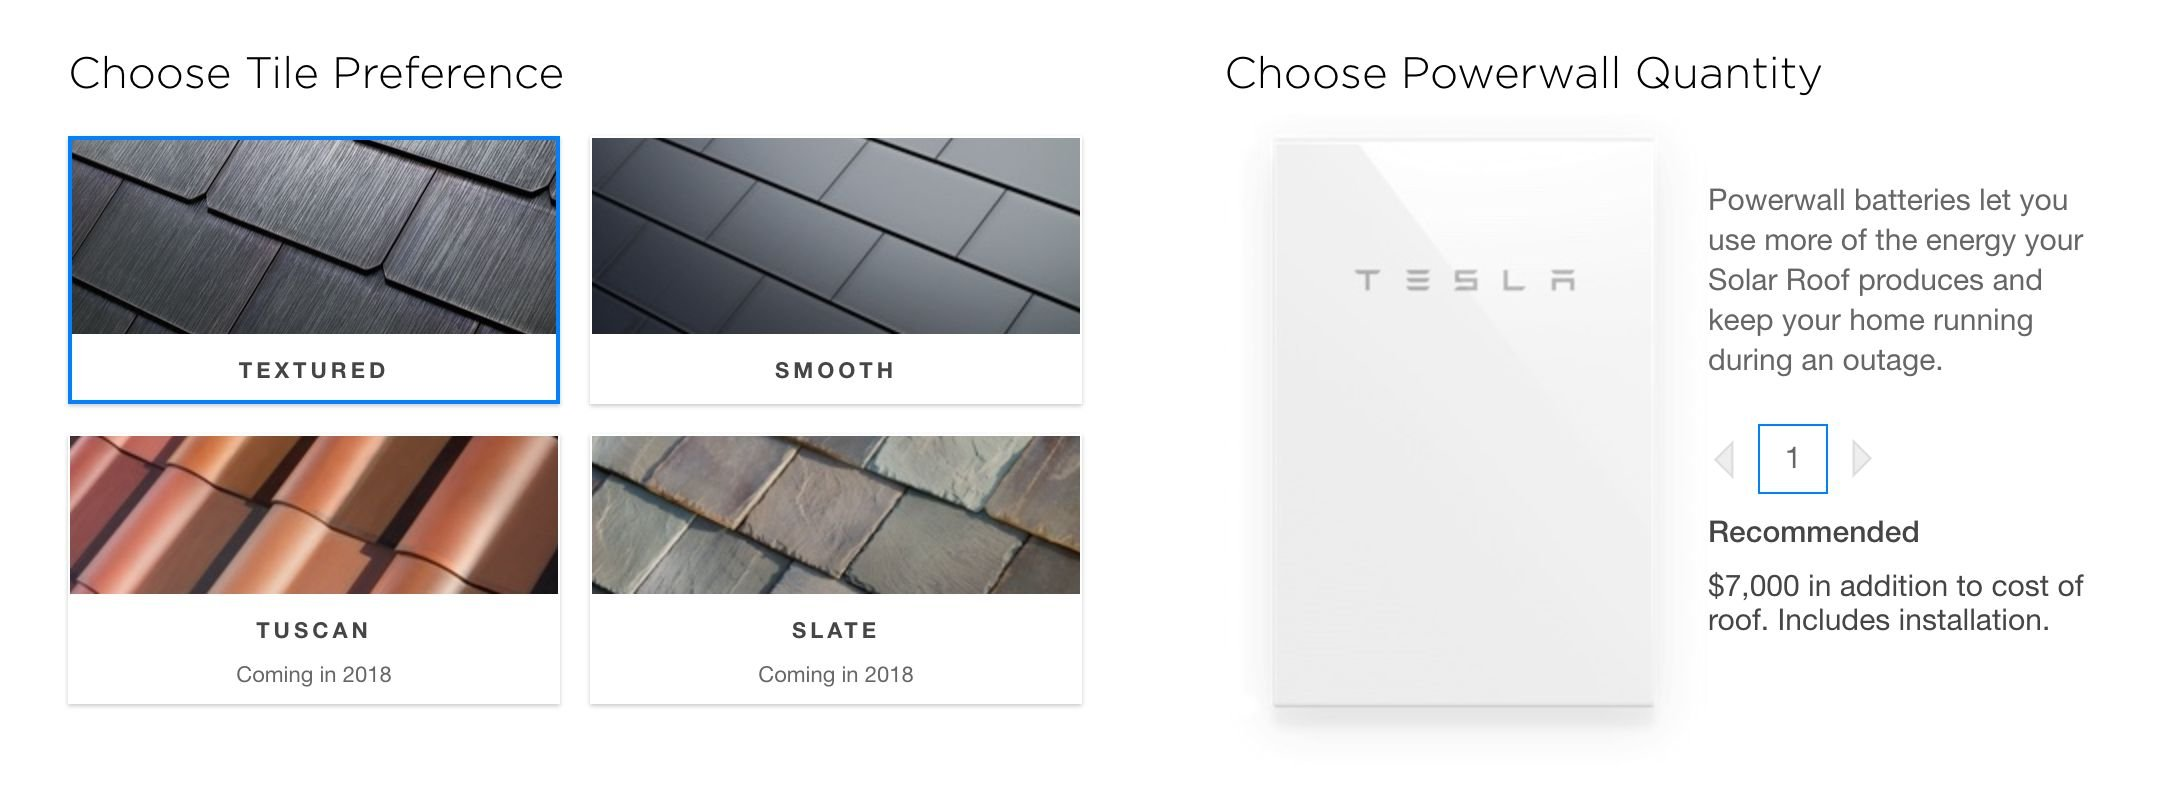 tesla solar roof tile preference and style